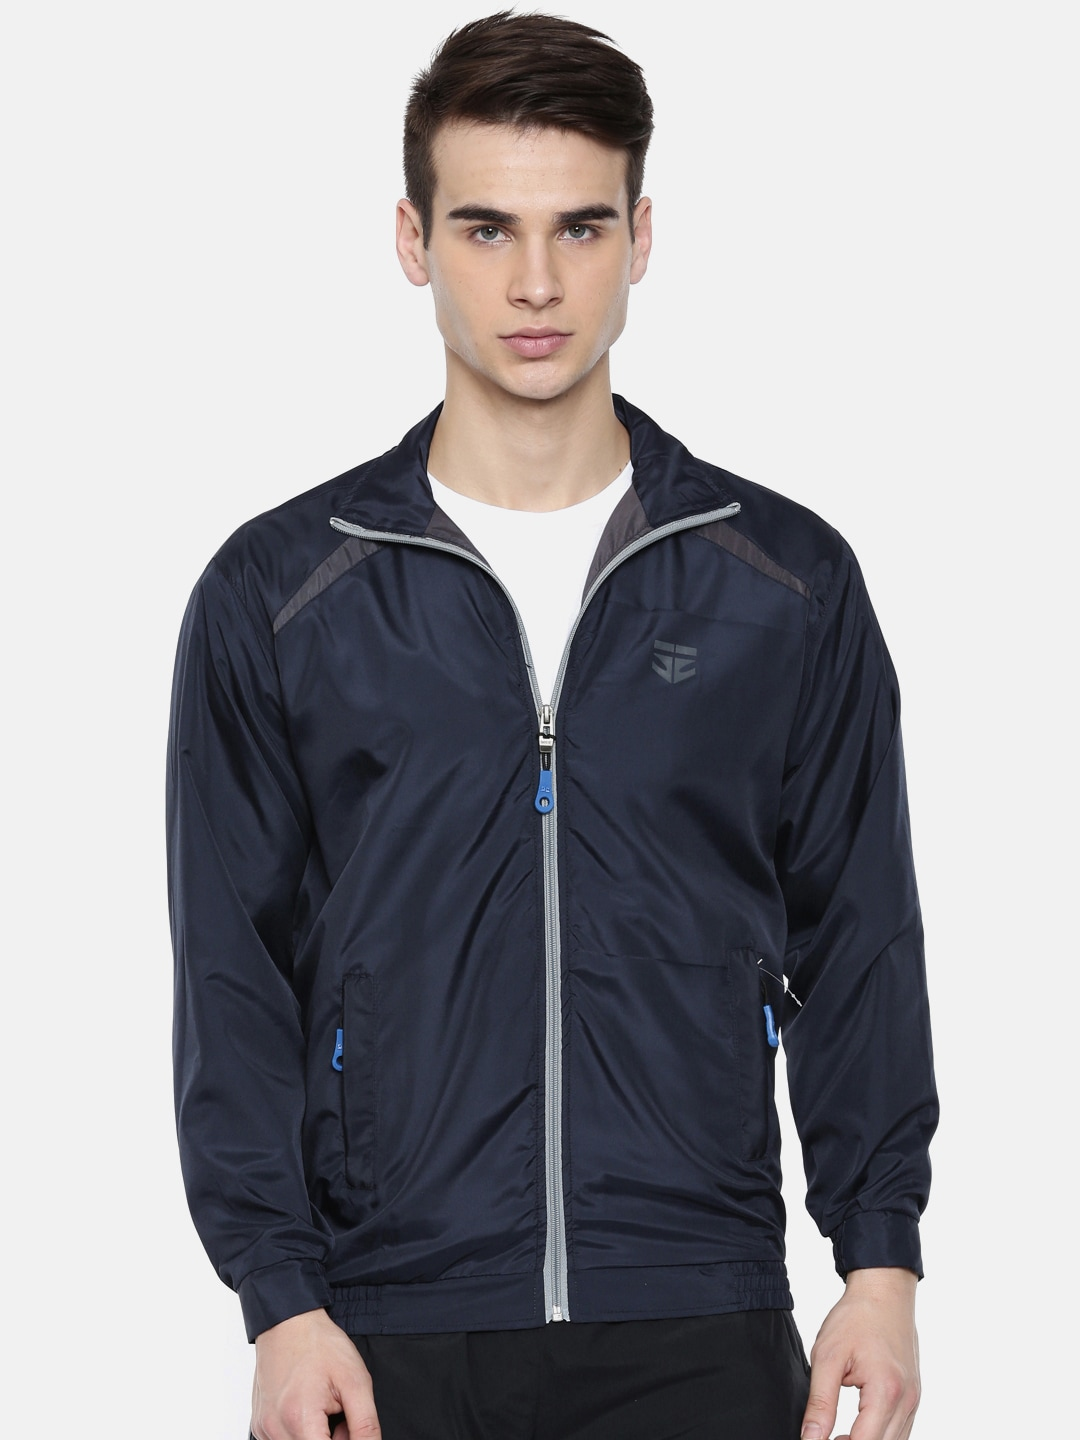 3729aca91aca Polyester Jackets - Buy Polyester Jackets Online in India